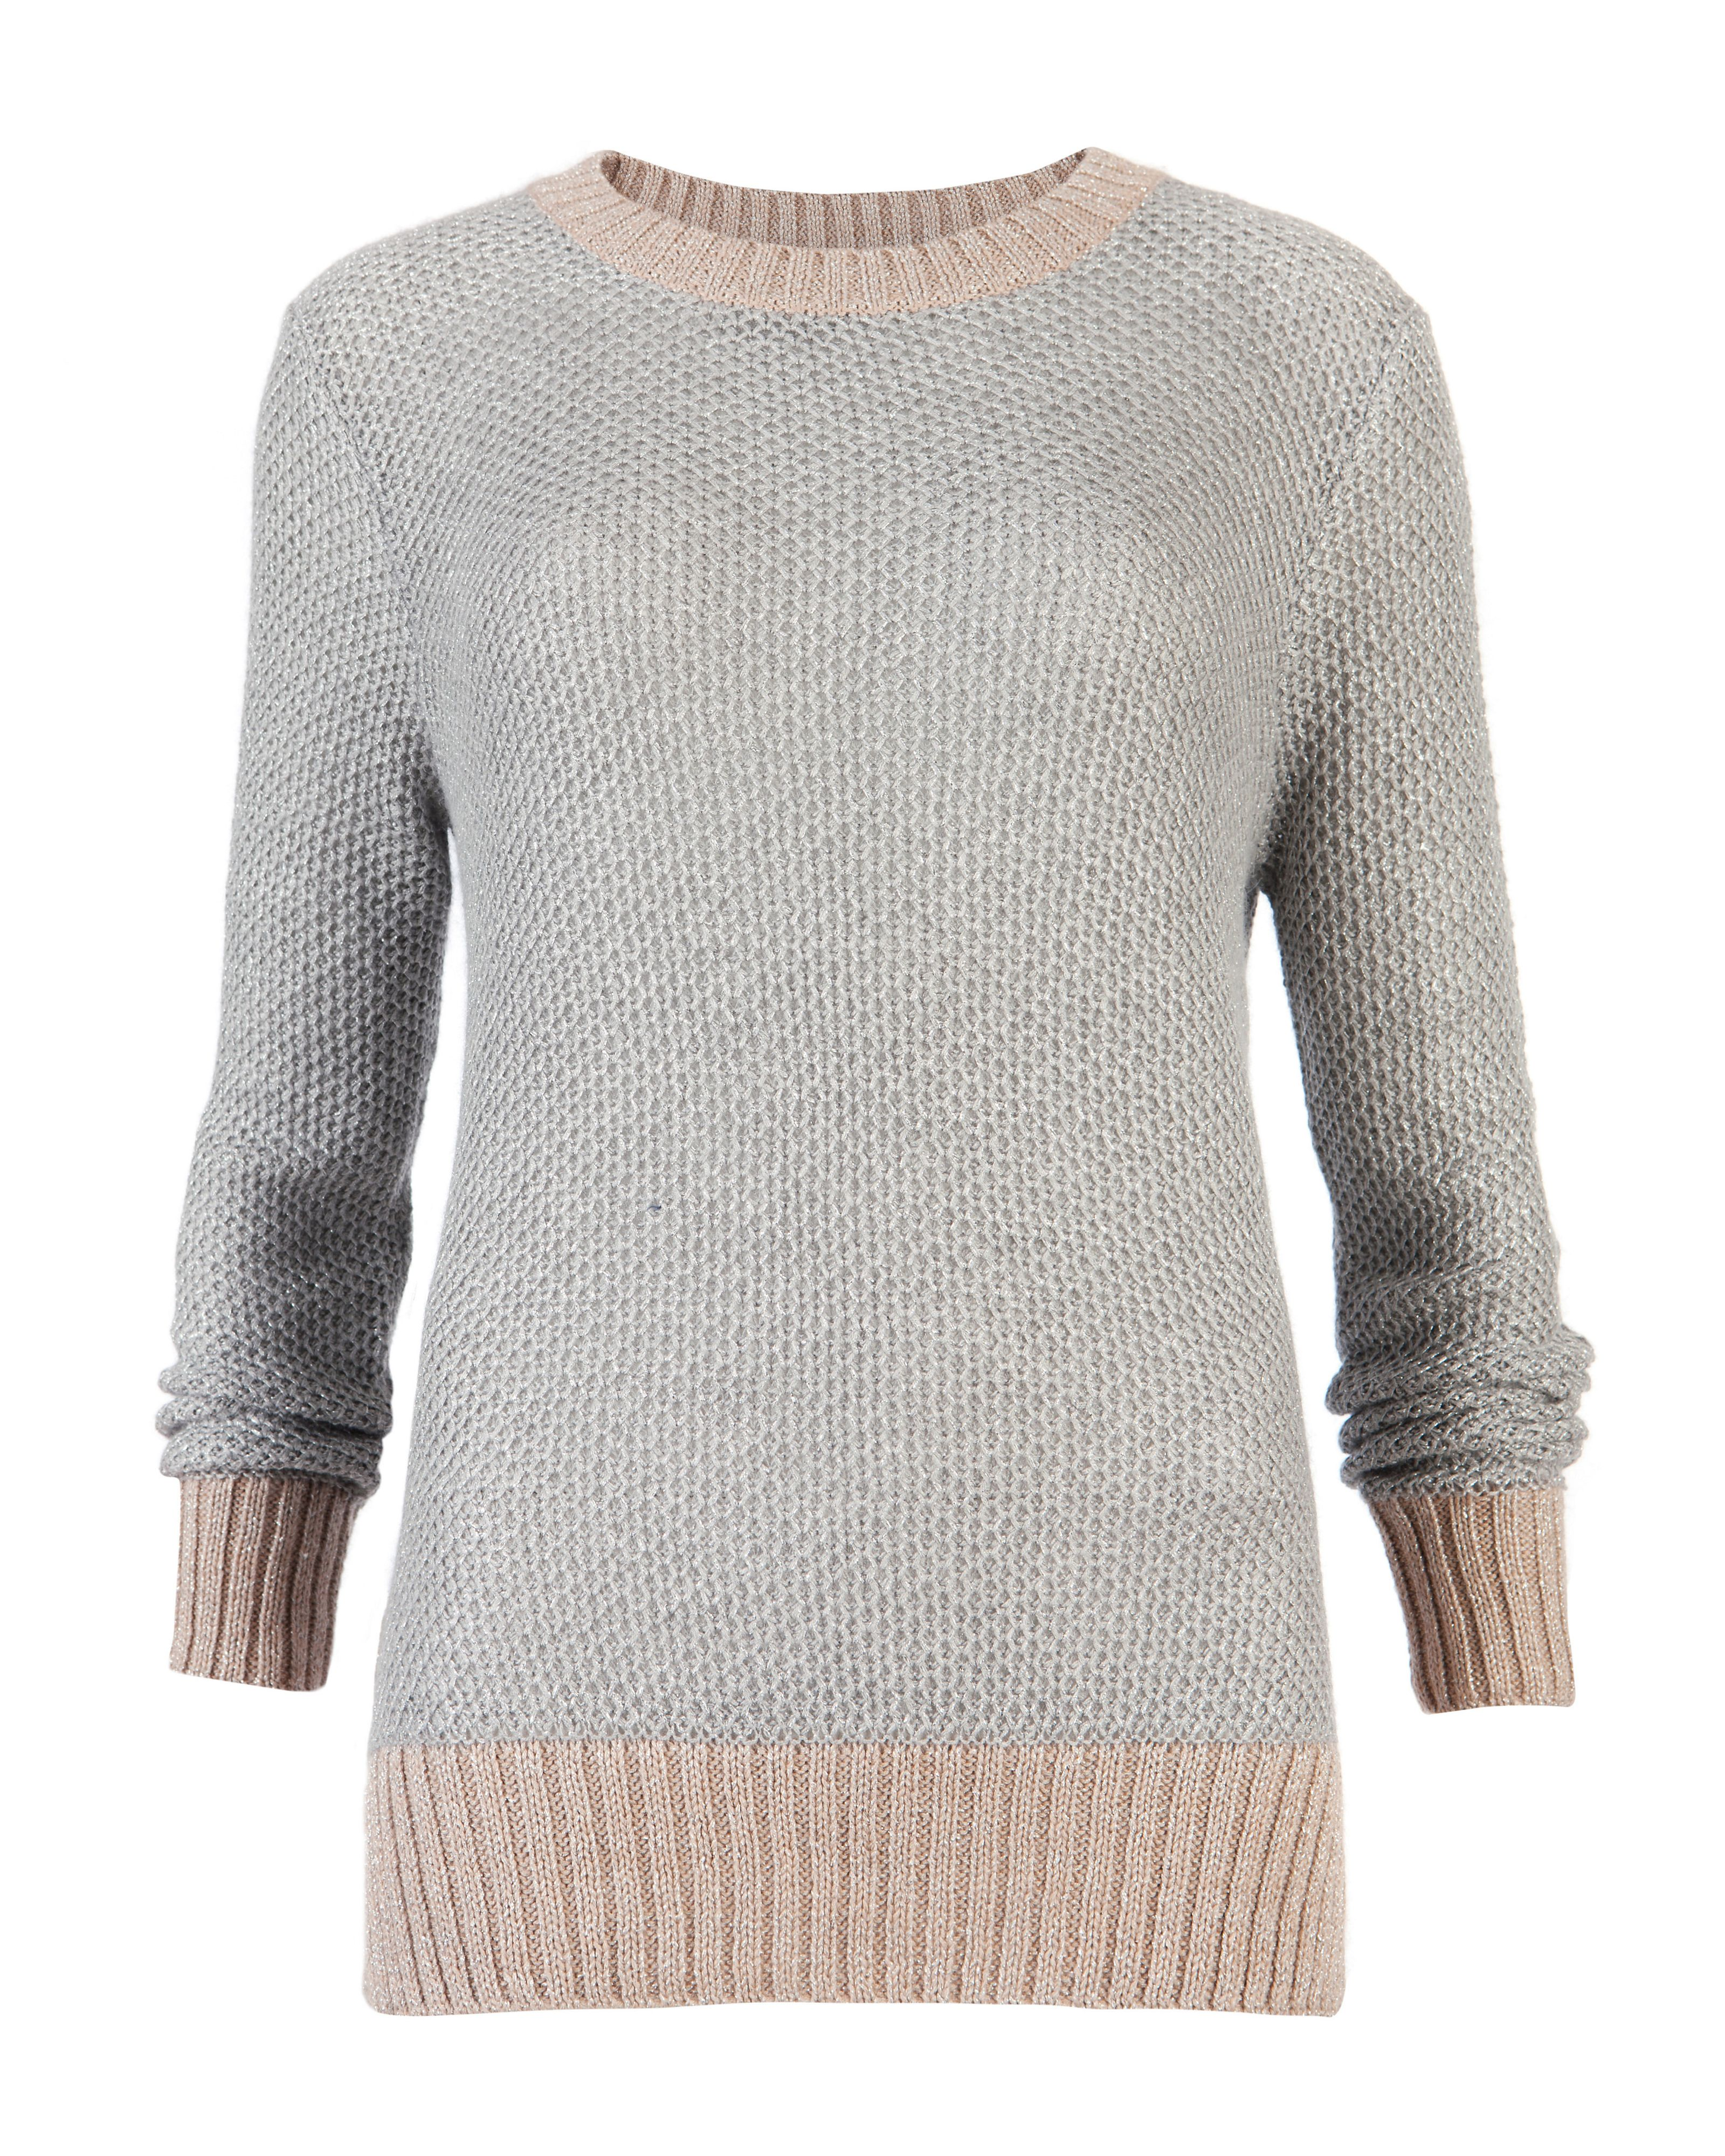 Tiaa stitch detail sweater